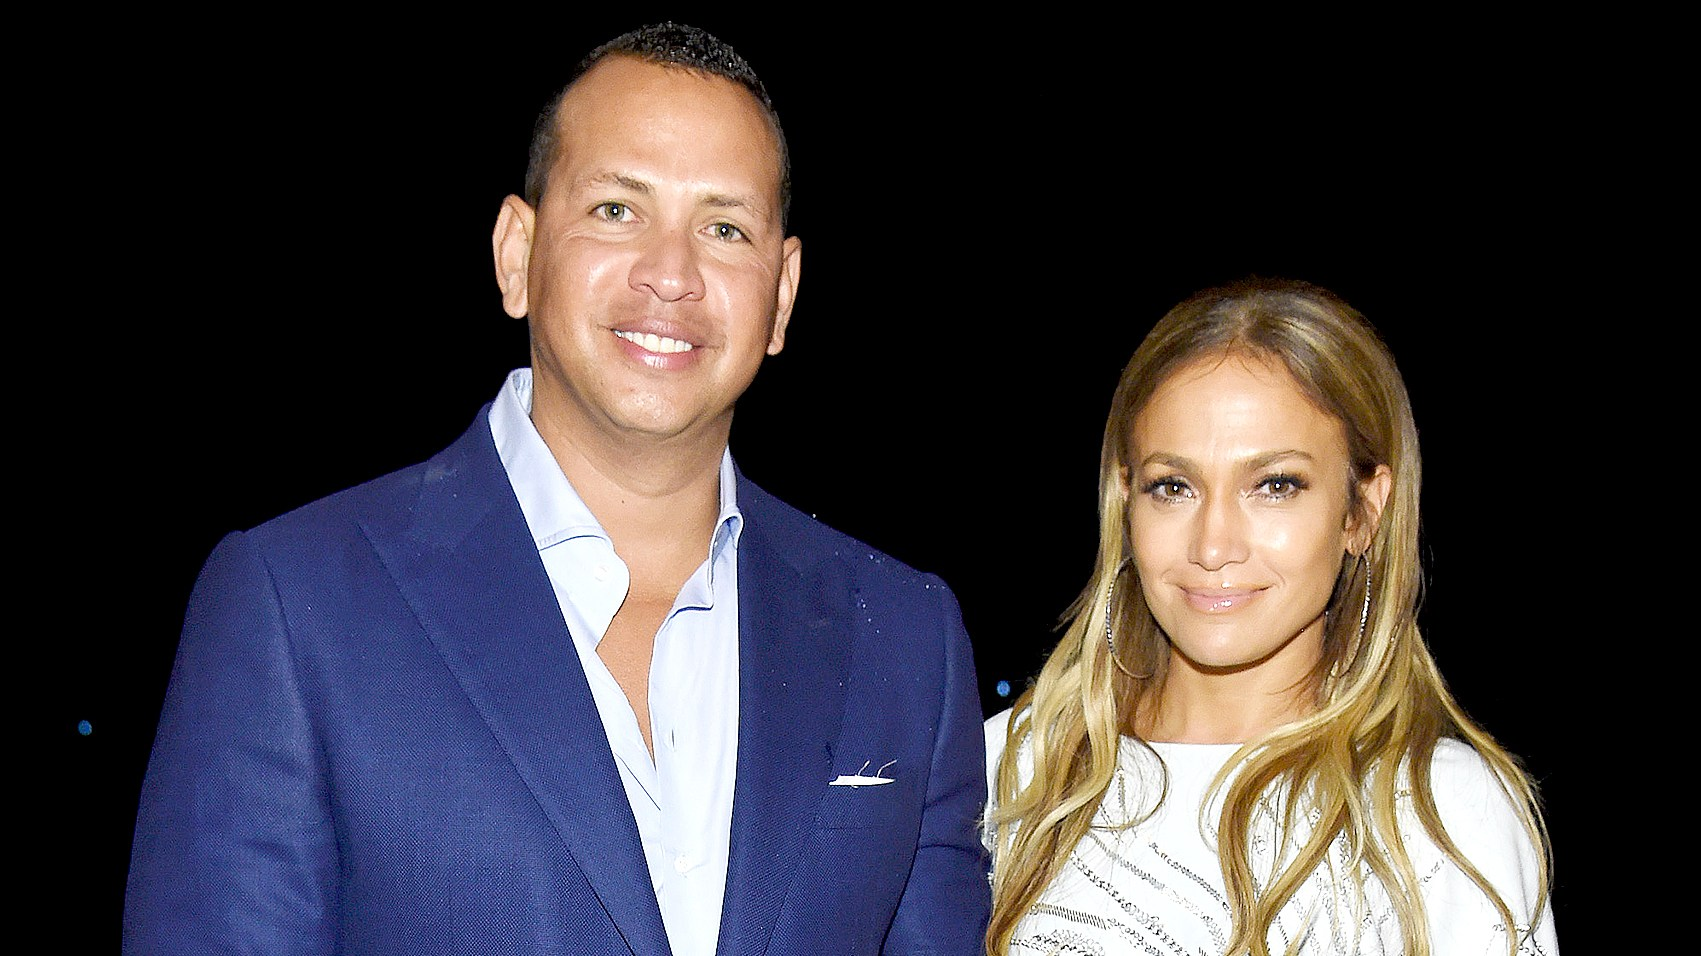 Alex Rodriguez and Jennifer Lopez attend Apollo in the Hamptons 2017: hosted by Ronald O. Perelman at The Creeks on August 12, 2017 in East Hampton, New York.